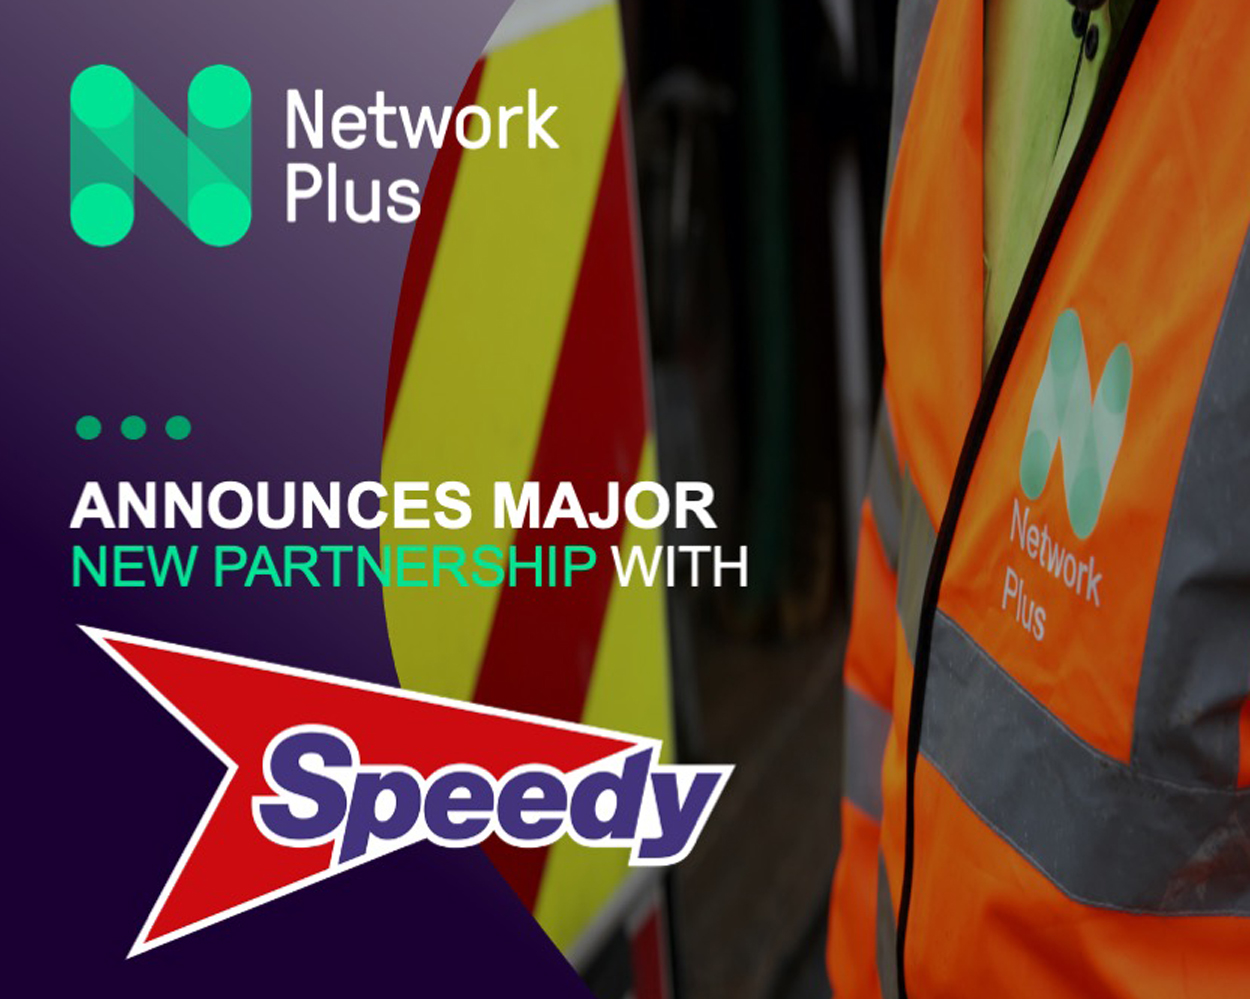 Network Plus and Go Traffic Management announce major partnership with Speedy